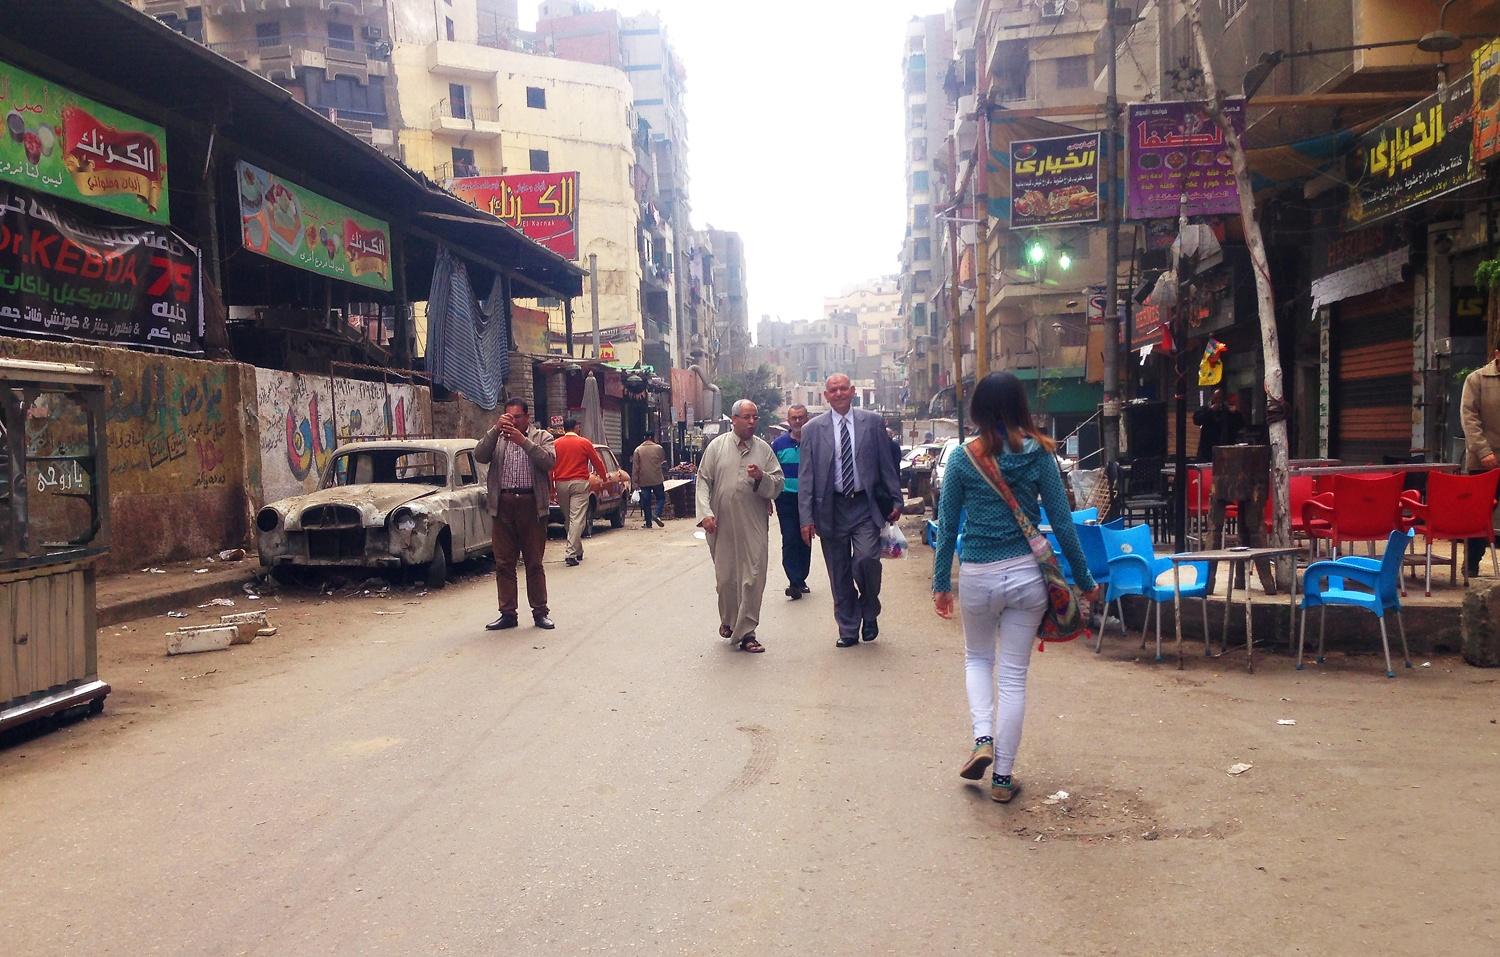 Street sexual harassment in egypt